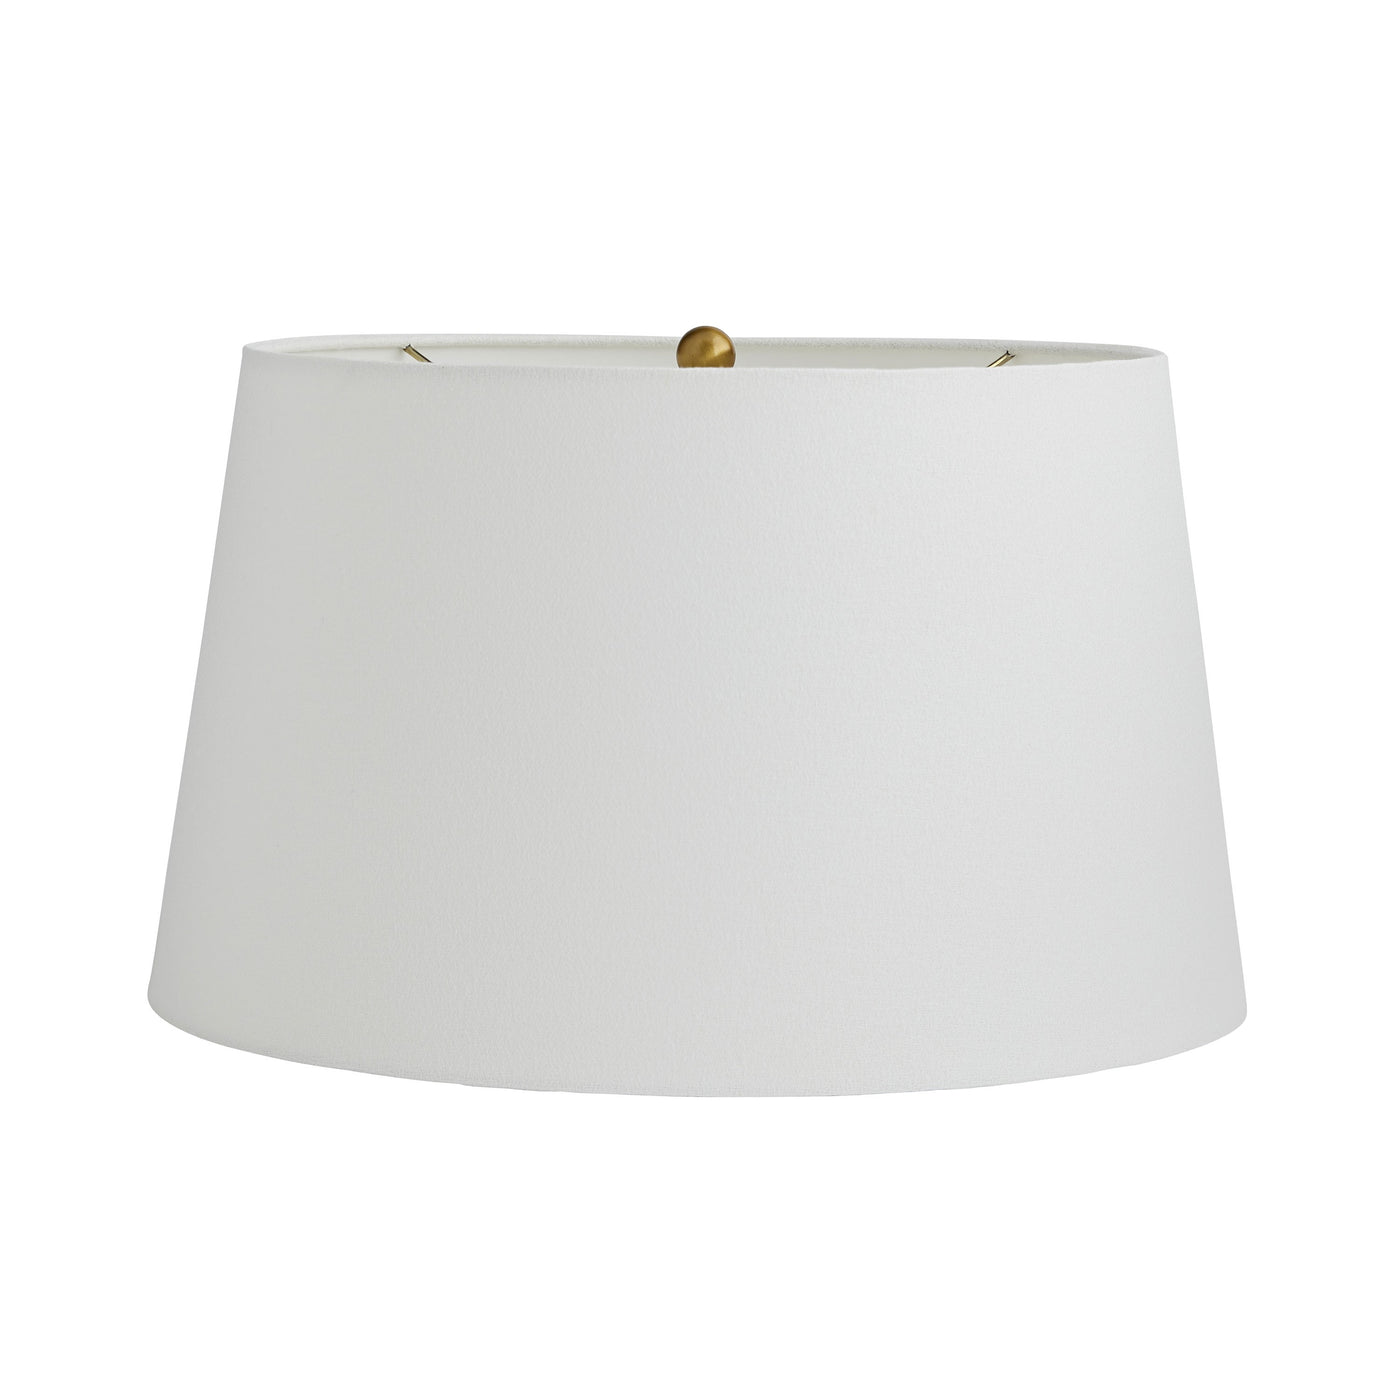 Arteriors-Home-Casper-Lamp-shade